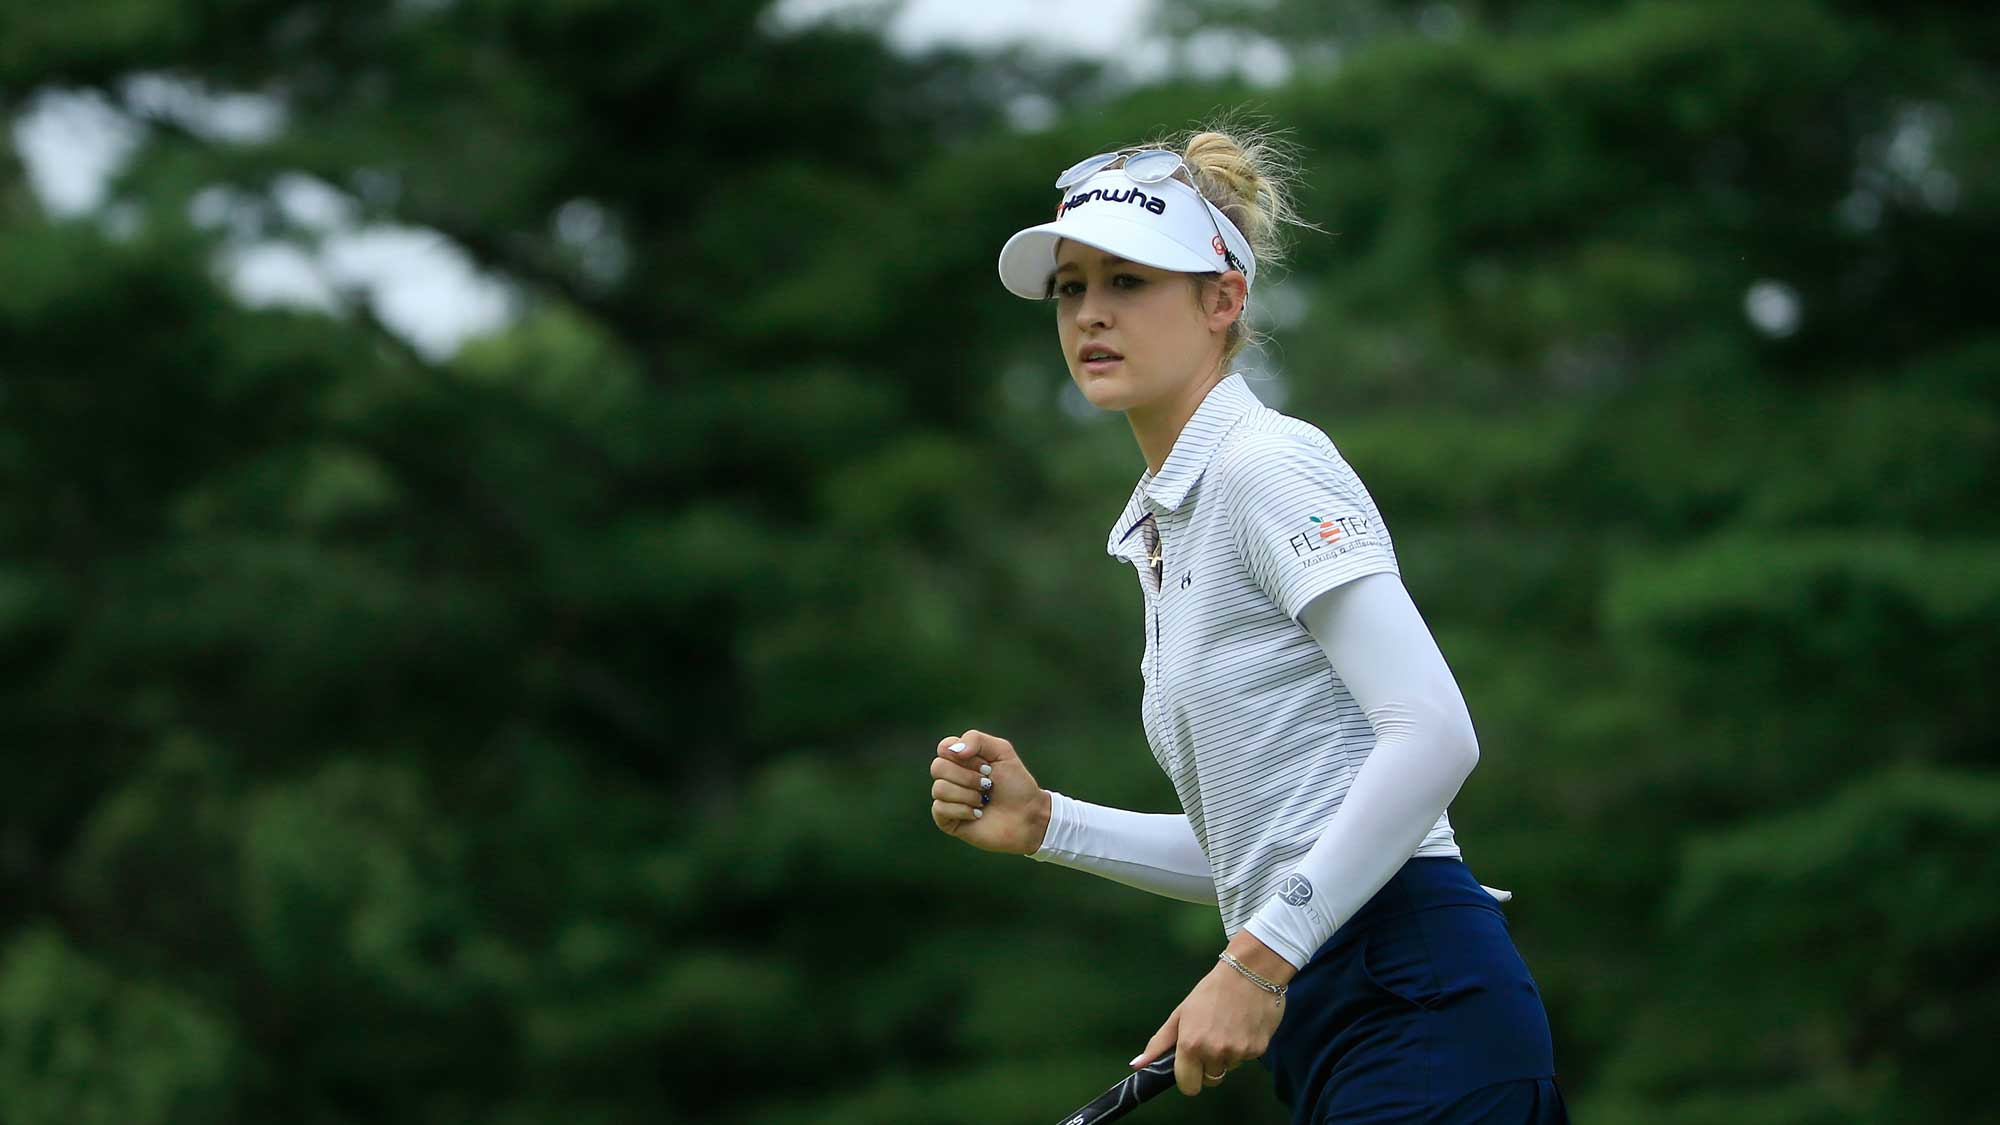 Nelly Korda Sleeps on 54-Hole Lead in Toledo